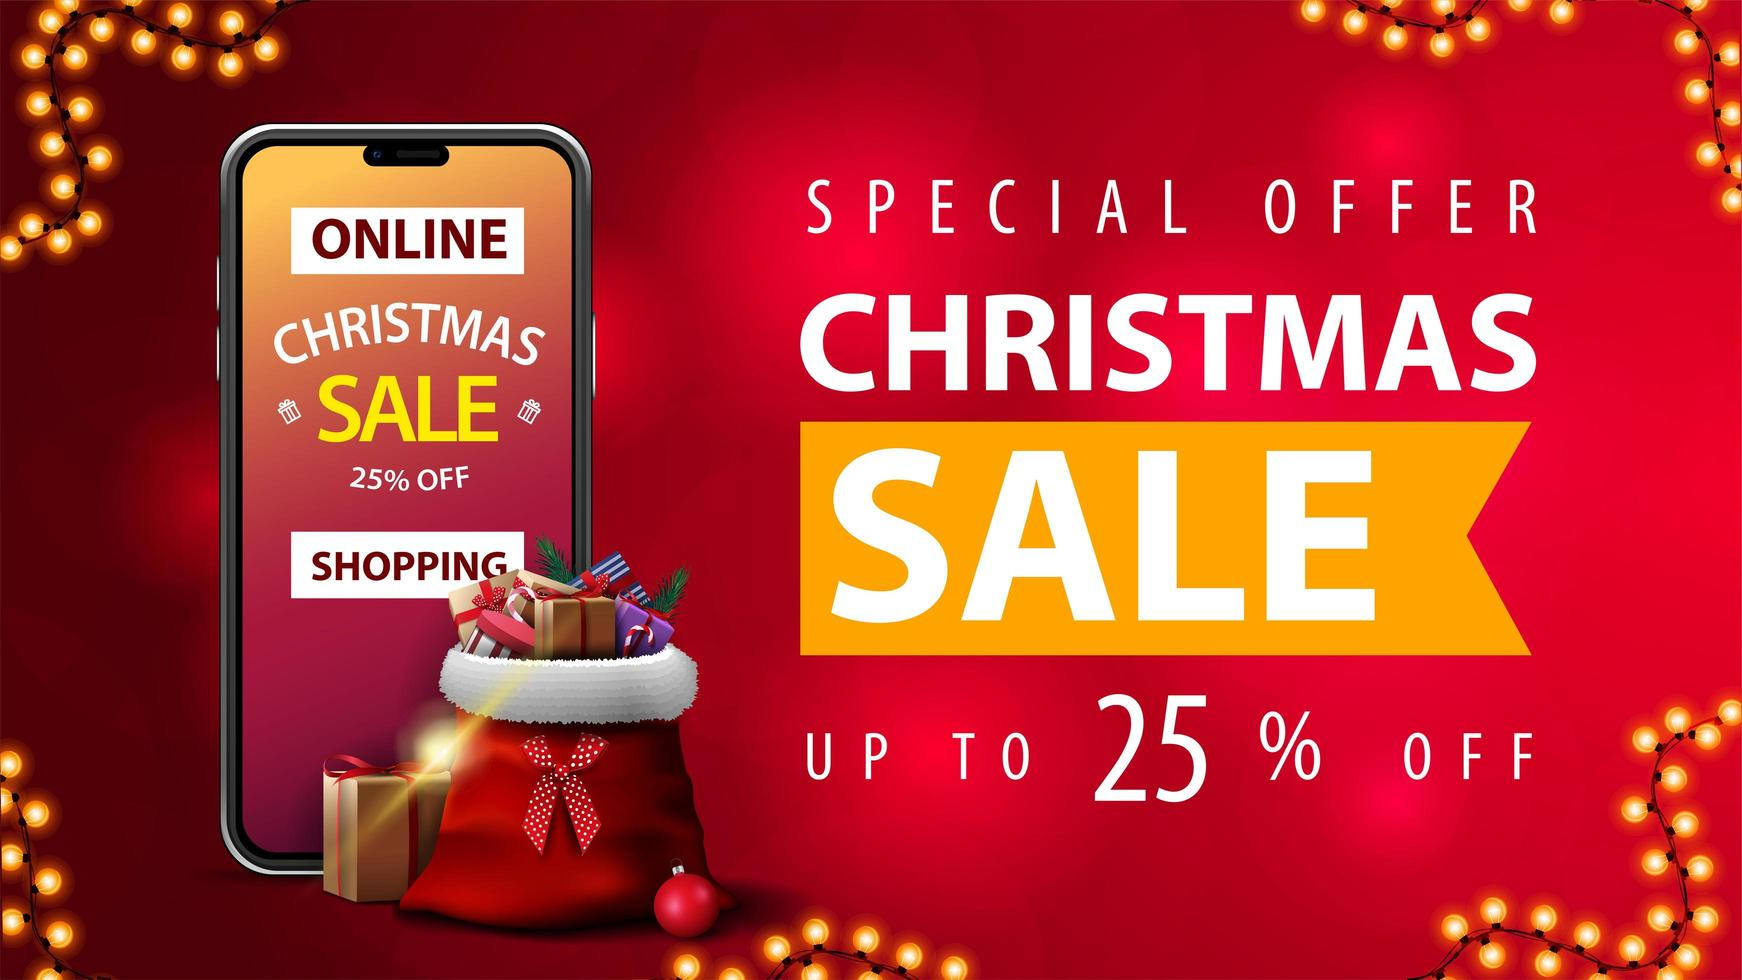 Online Shopping, Special offer, Christmas sale, up to 25 off, red discount web banner with blurred background, smartphone with offer on screen vector